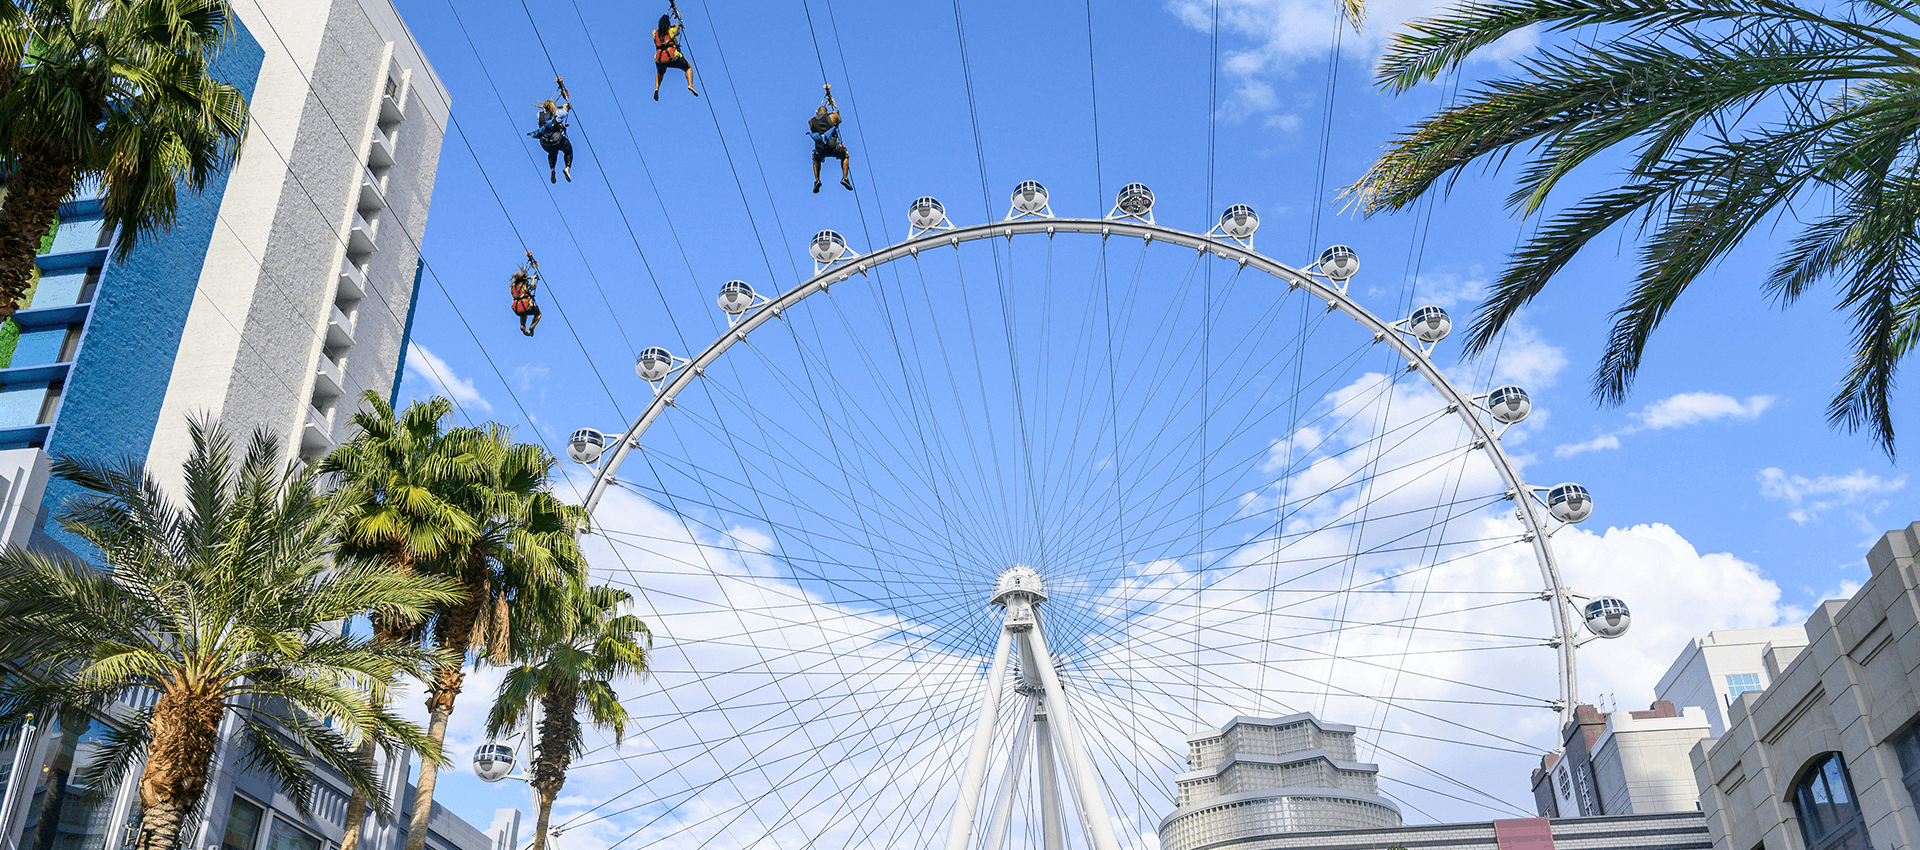 Things to Do in Nevada, Nevada Things to Do, LINQ Las Vegas, Zip Lining Las Vegas, Zip Line Nevada